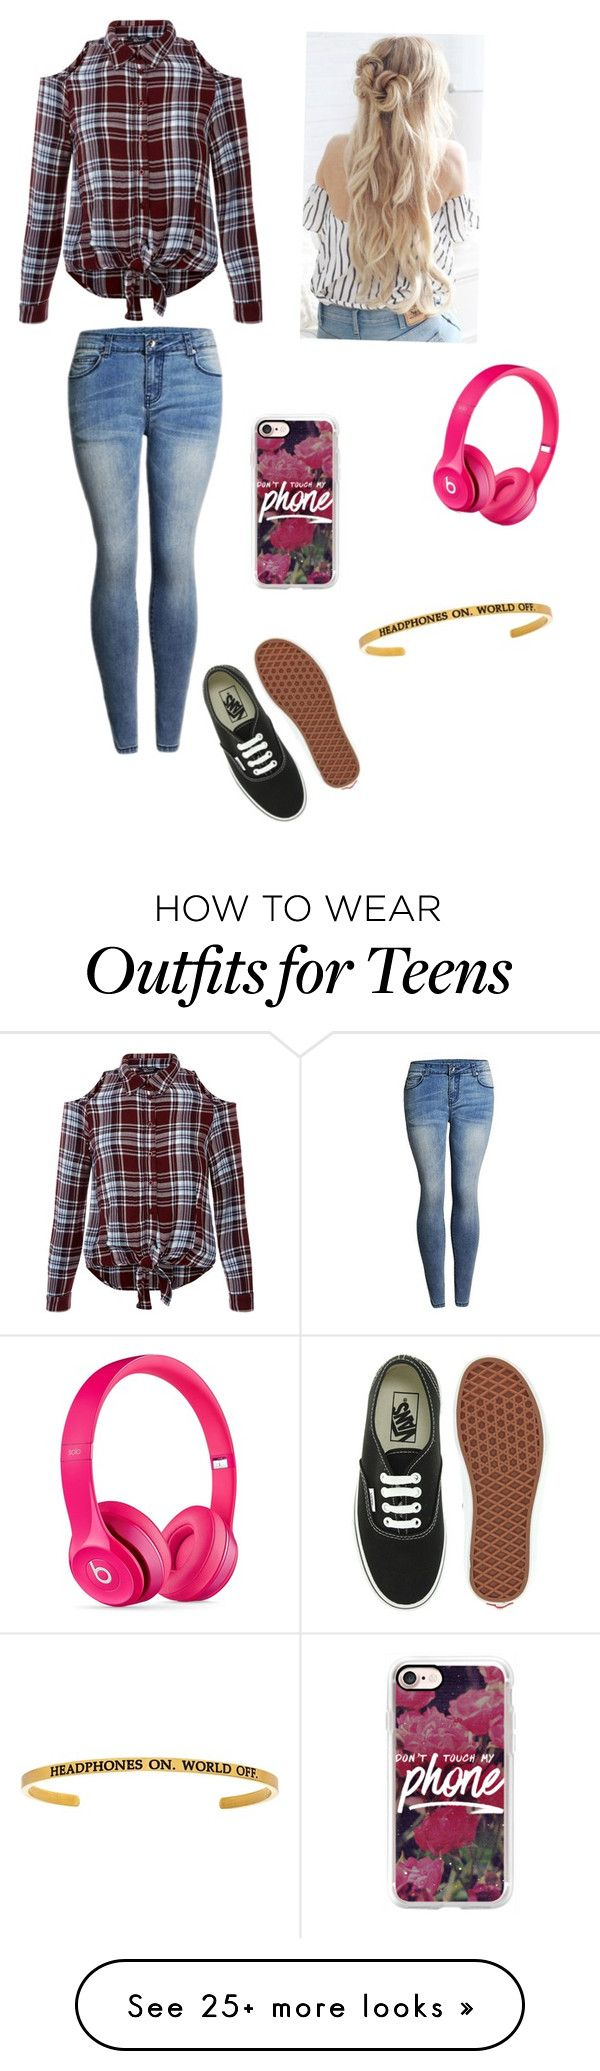 """""""Traveling in the 21st century"""" by carlenedenae on Polyvore featuring New Look, Vans, Casetify, Beats by Dr. Dre, traveling, sunday and November13th2016"""